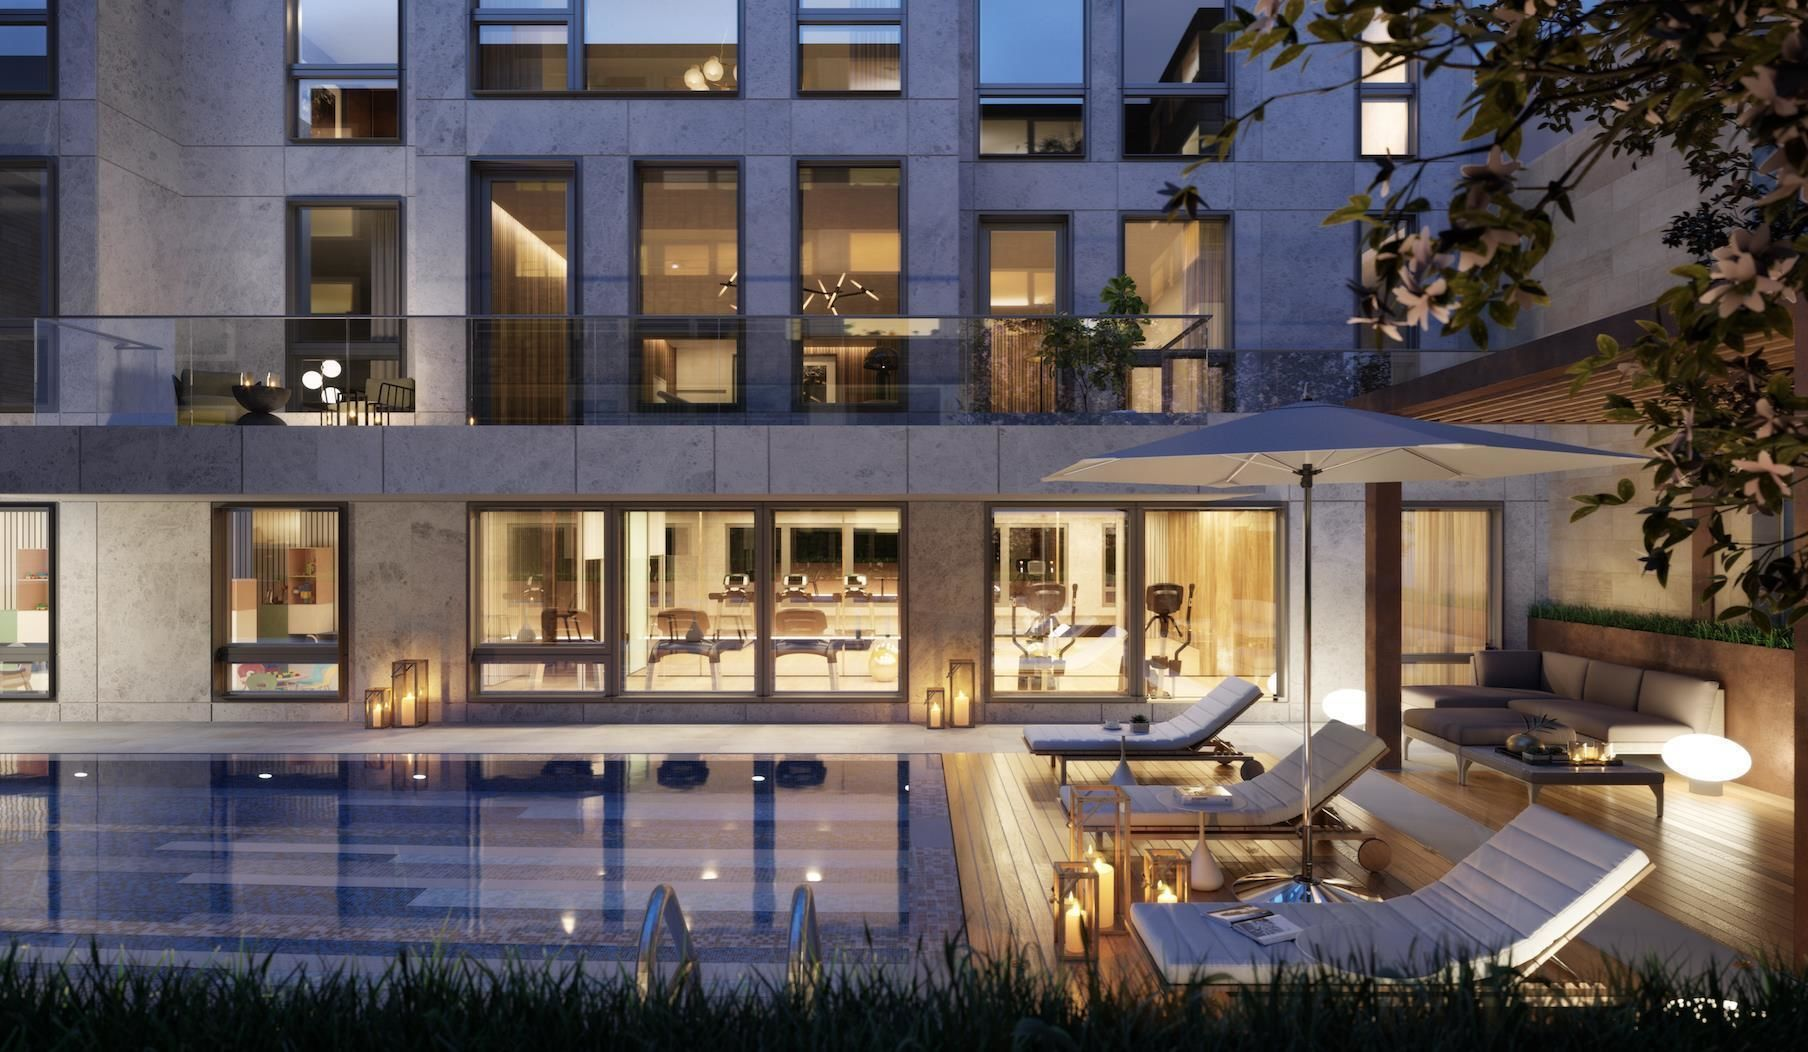 Apartment for sale at 150 East 23rd Street, Apt PH-C